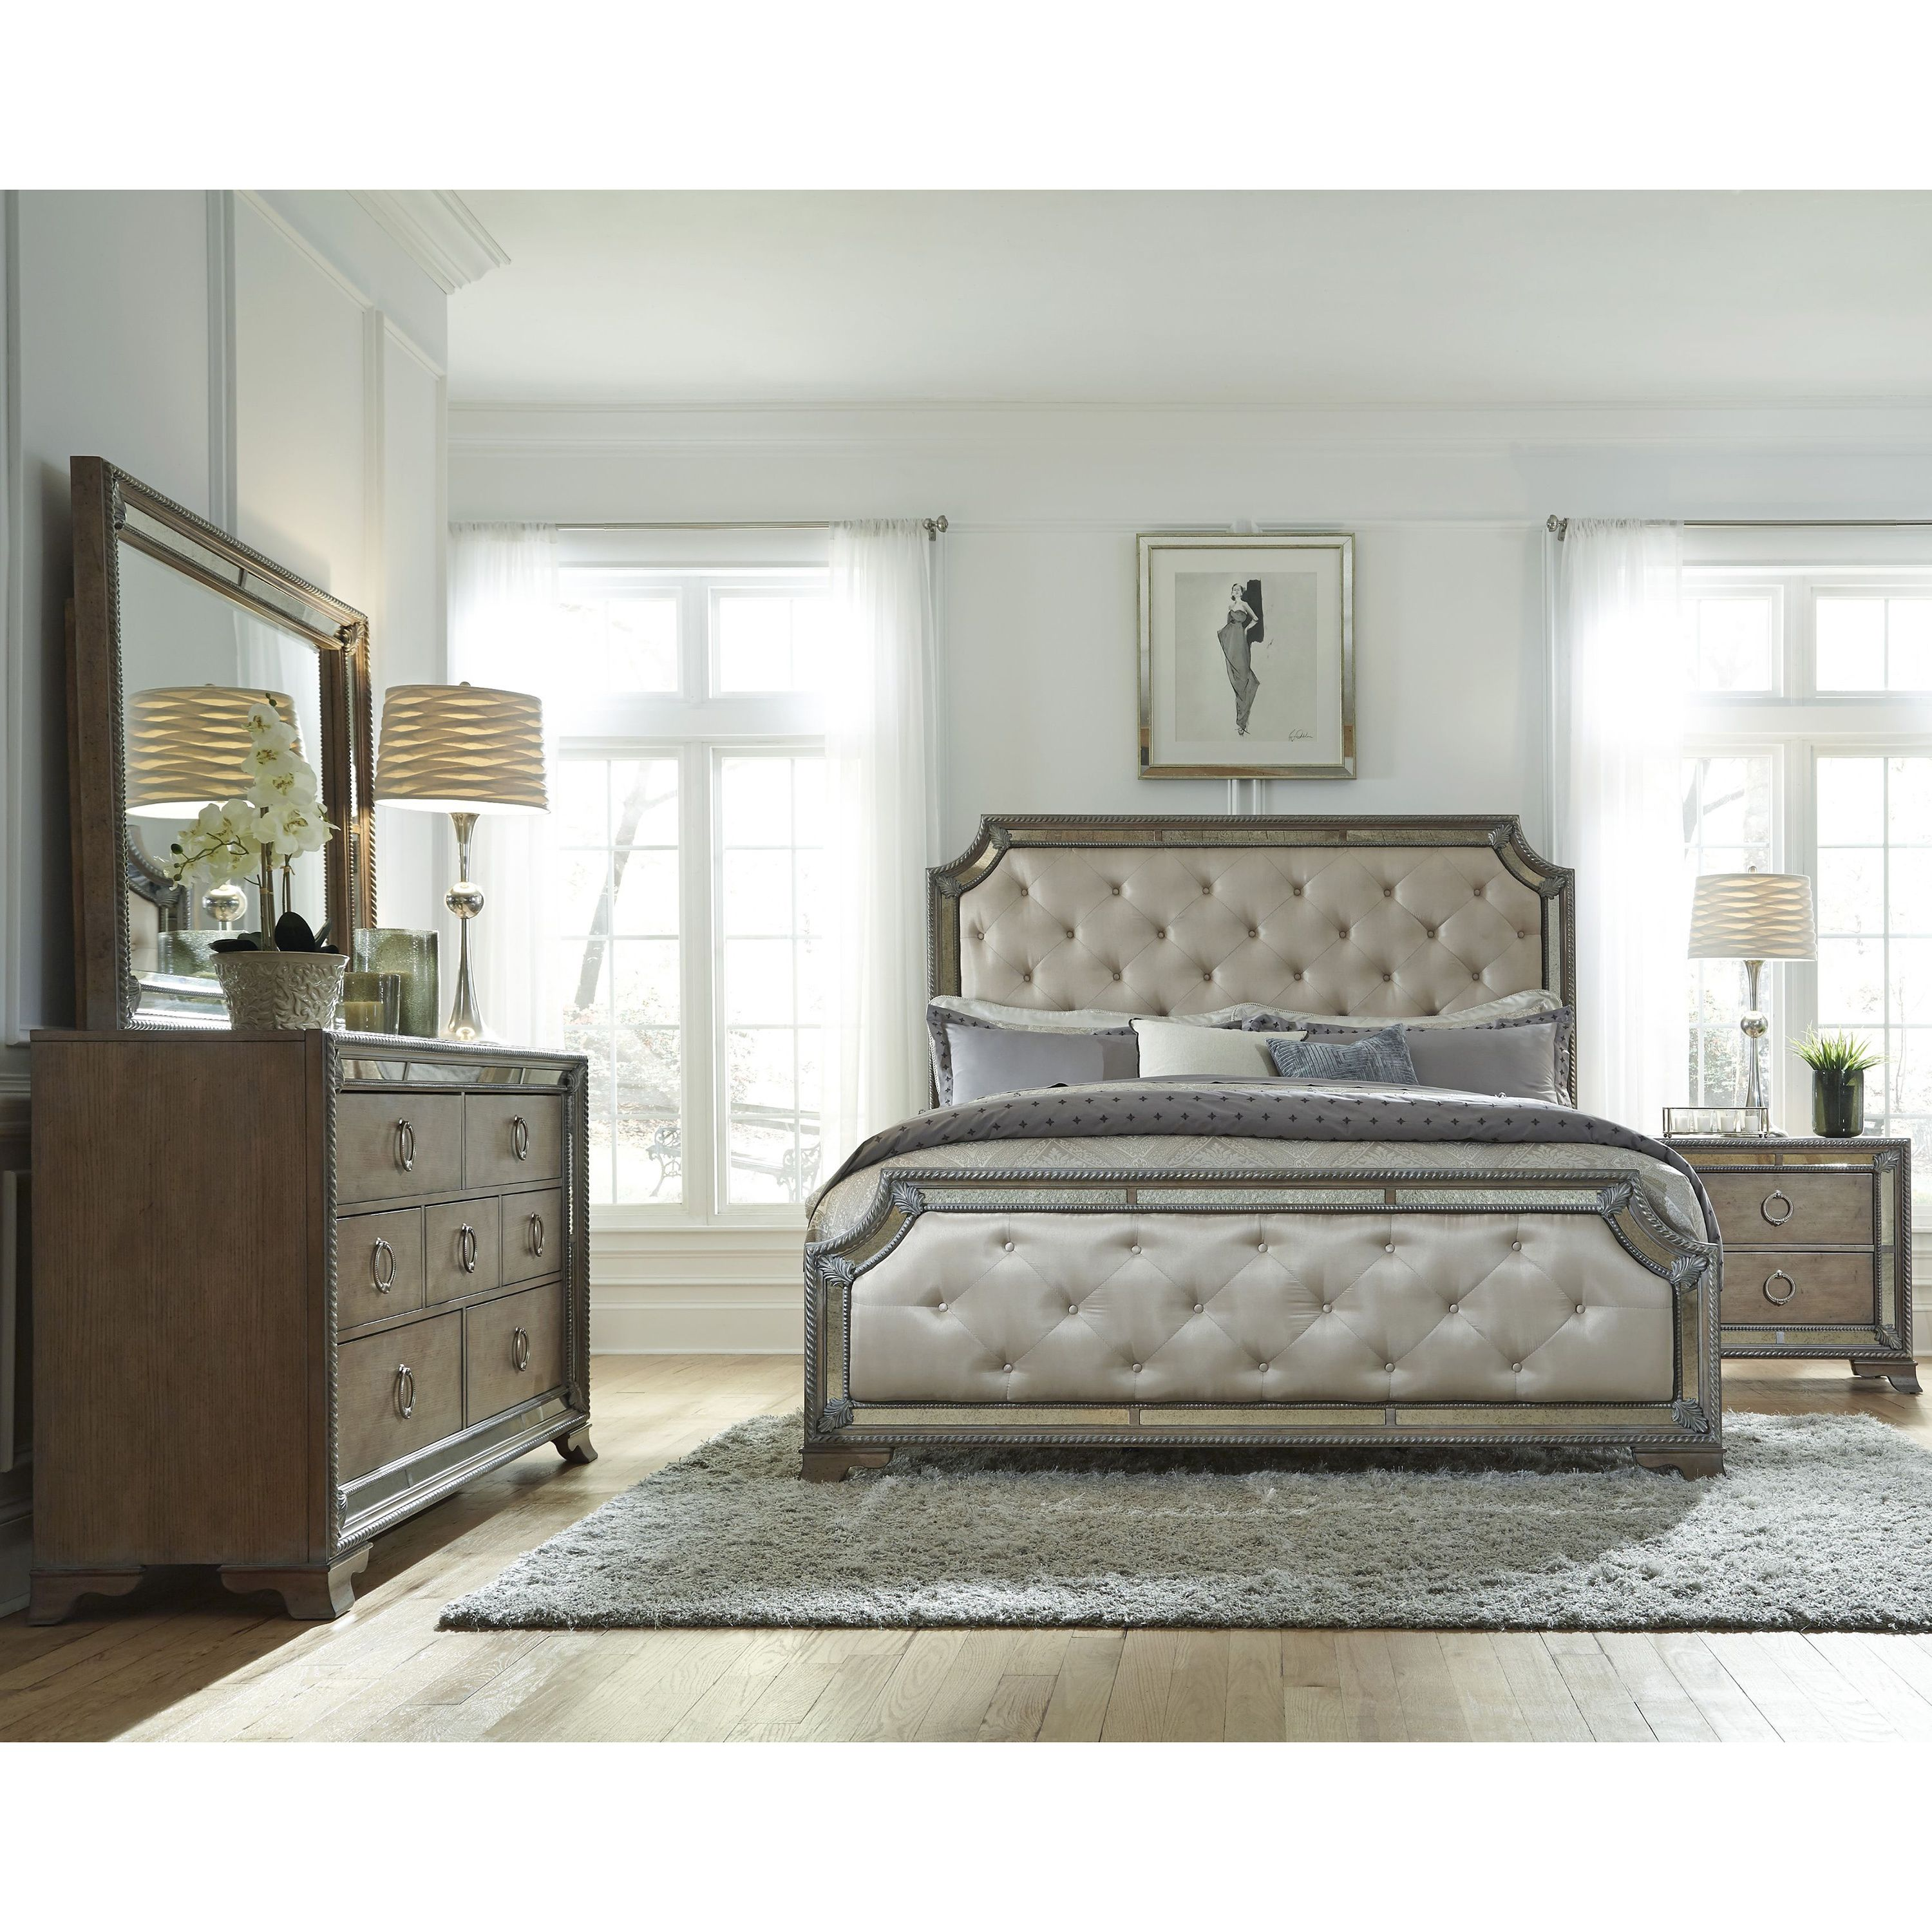 mariah king size bed frame products pinterest rh pinterest at